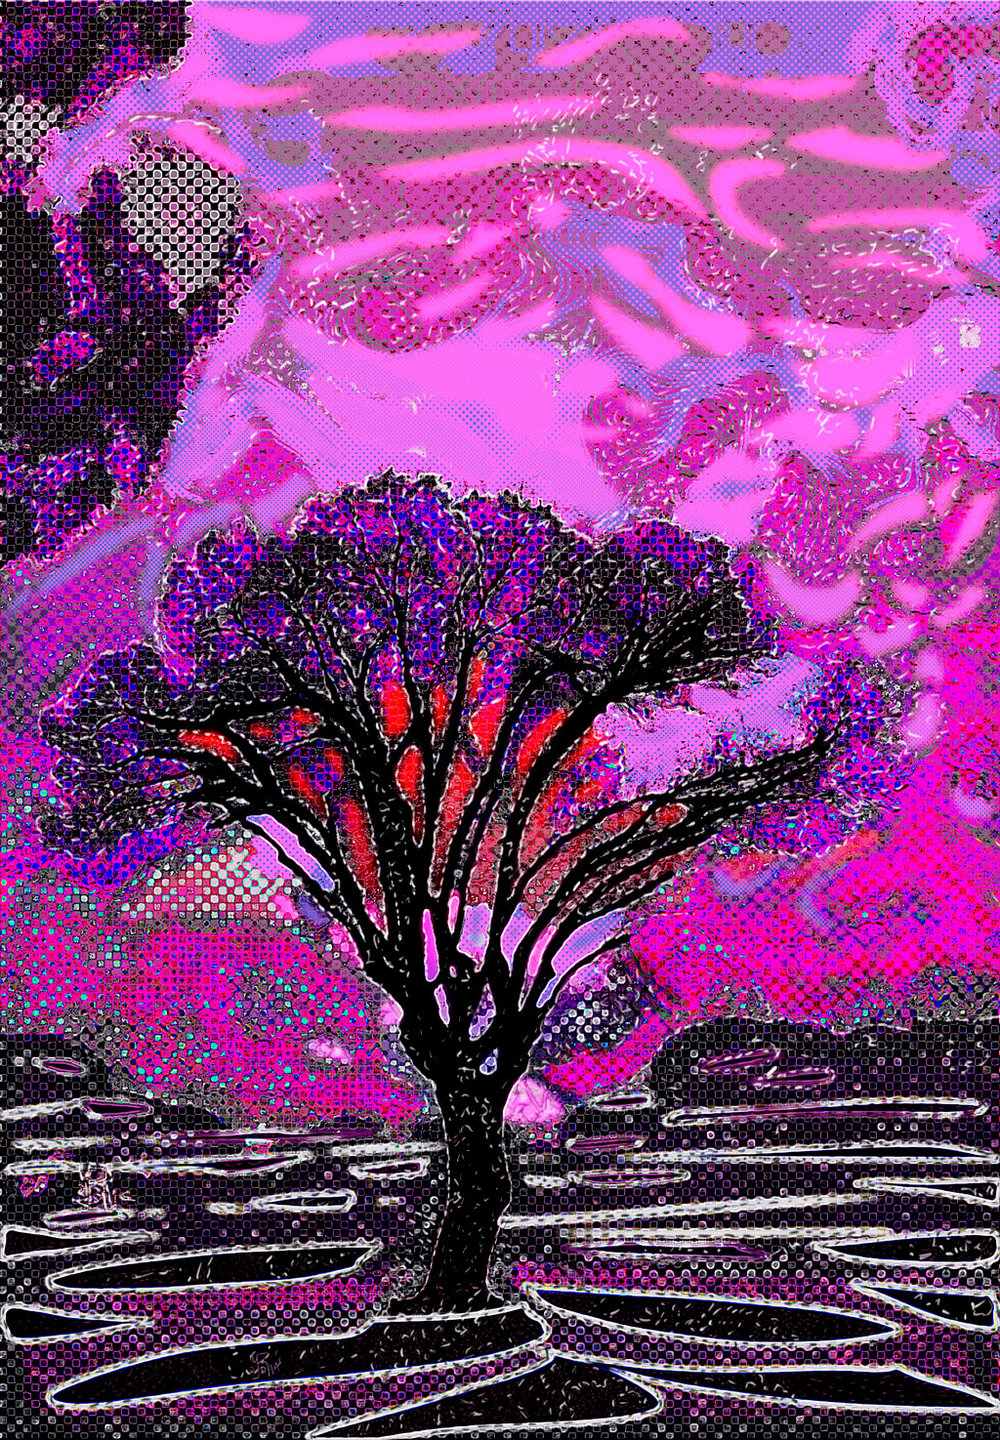 Mended Tree  (Árbol remendado) Digital C-Print, 108 x 75 cm